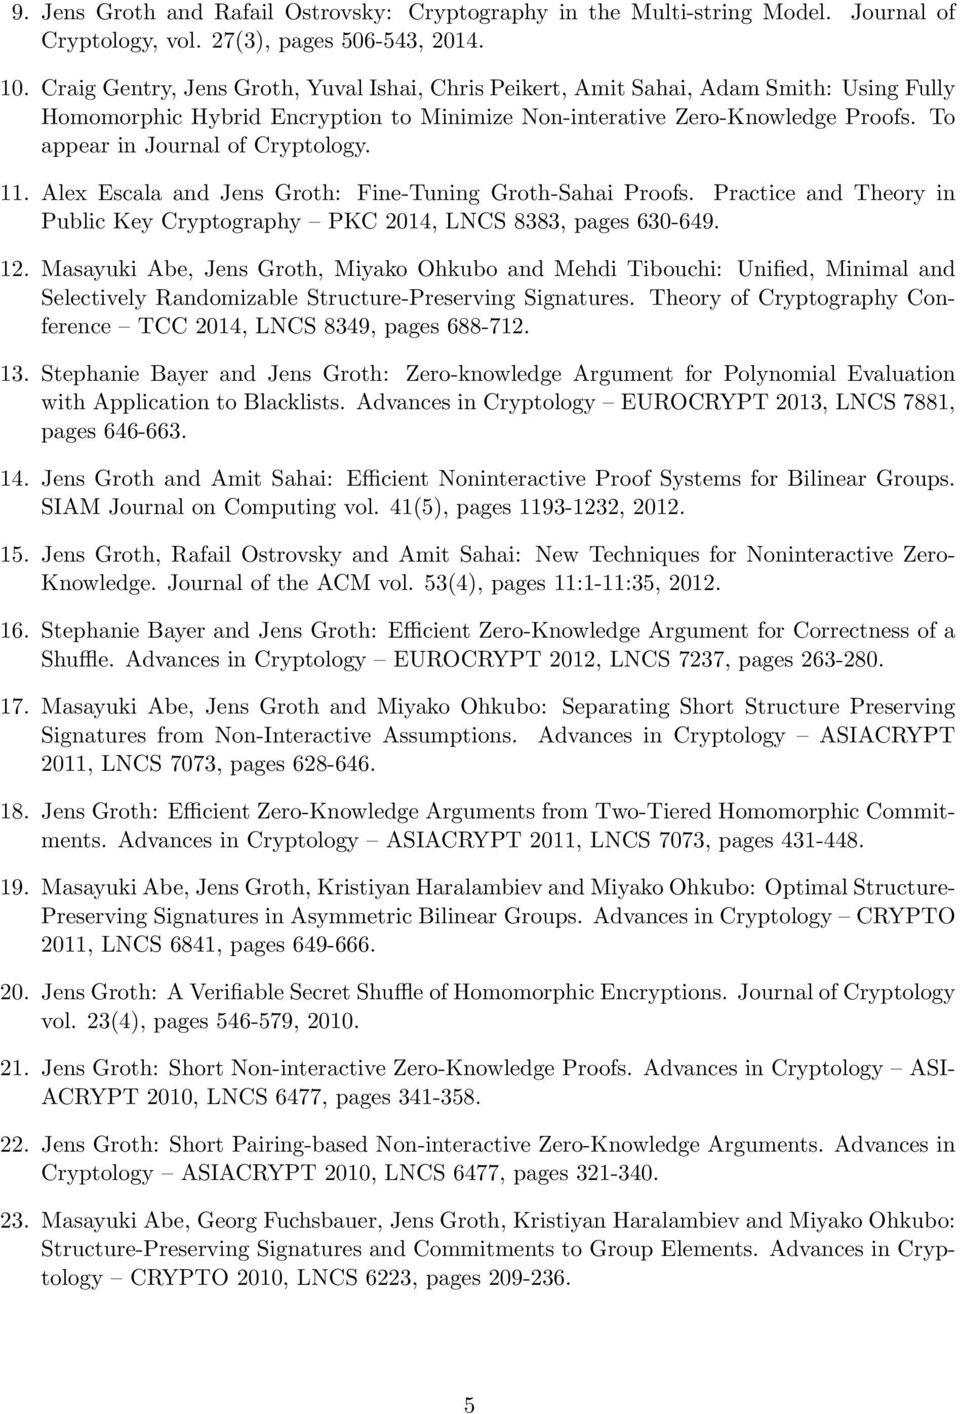 To appear in Journal of Cryptology. 11. Alex Escala and Jens Groth: Fine-Tuning Groth-Sahai Proofs. Practice and Theory in Public Key Cryptography PKC 2014, LNCS 8383, pages 630-649. 12.